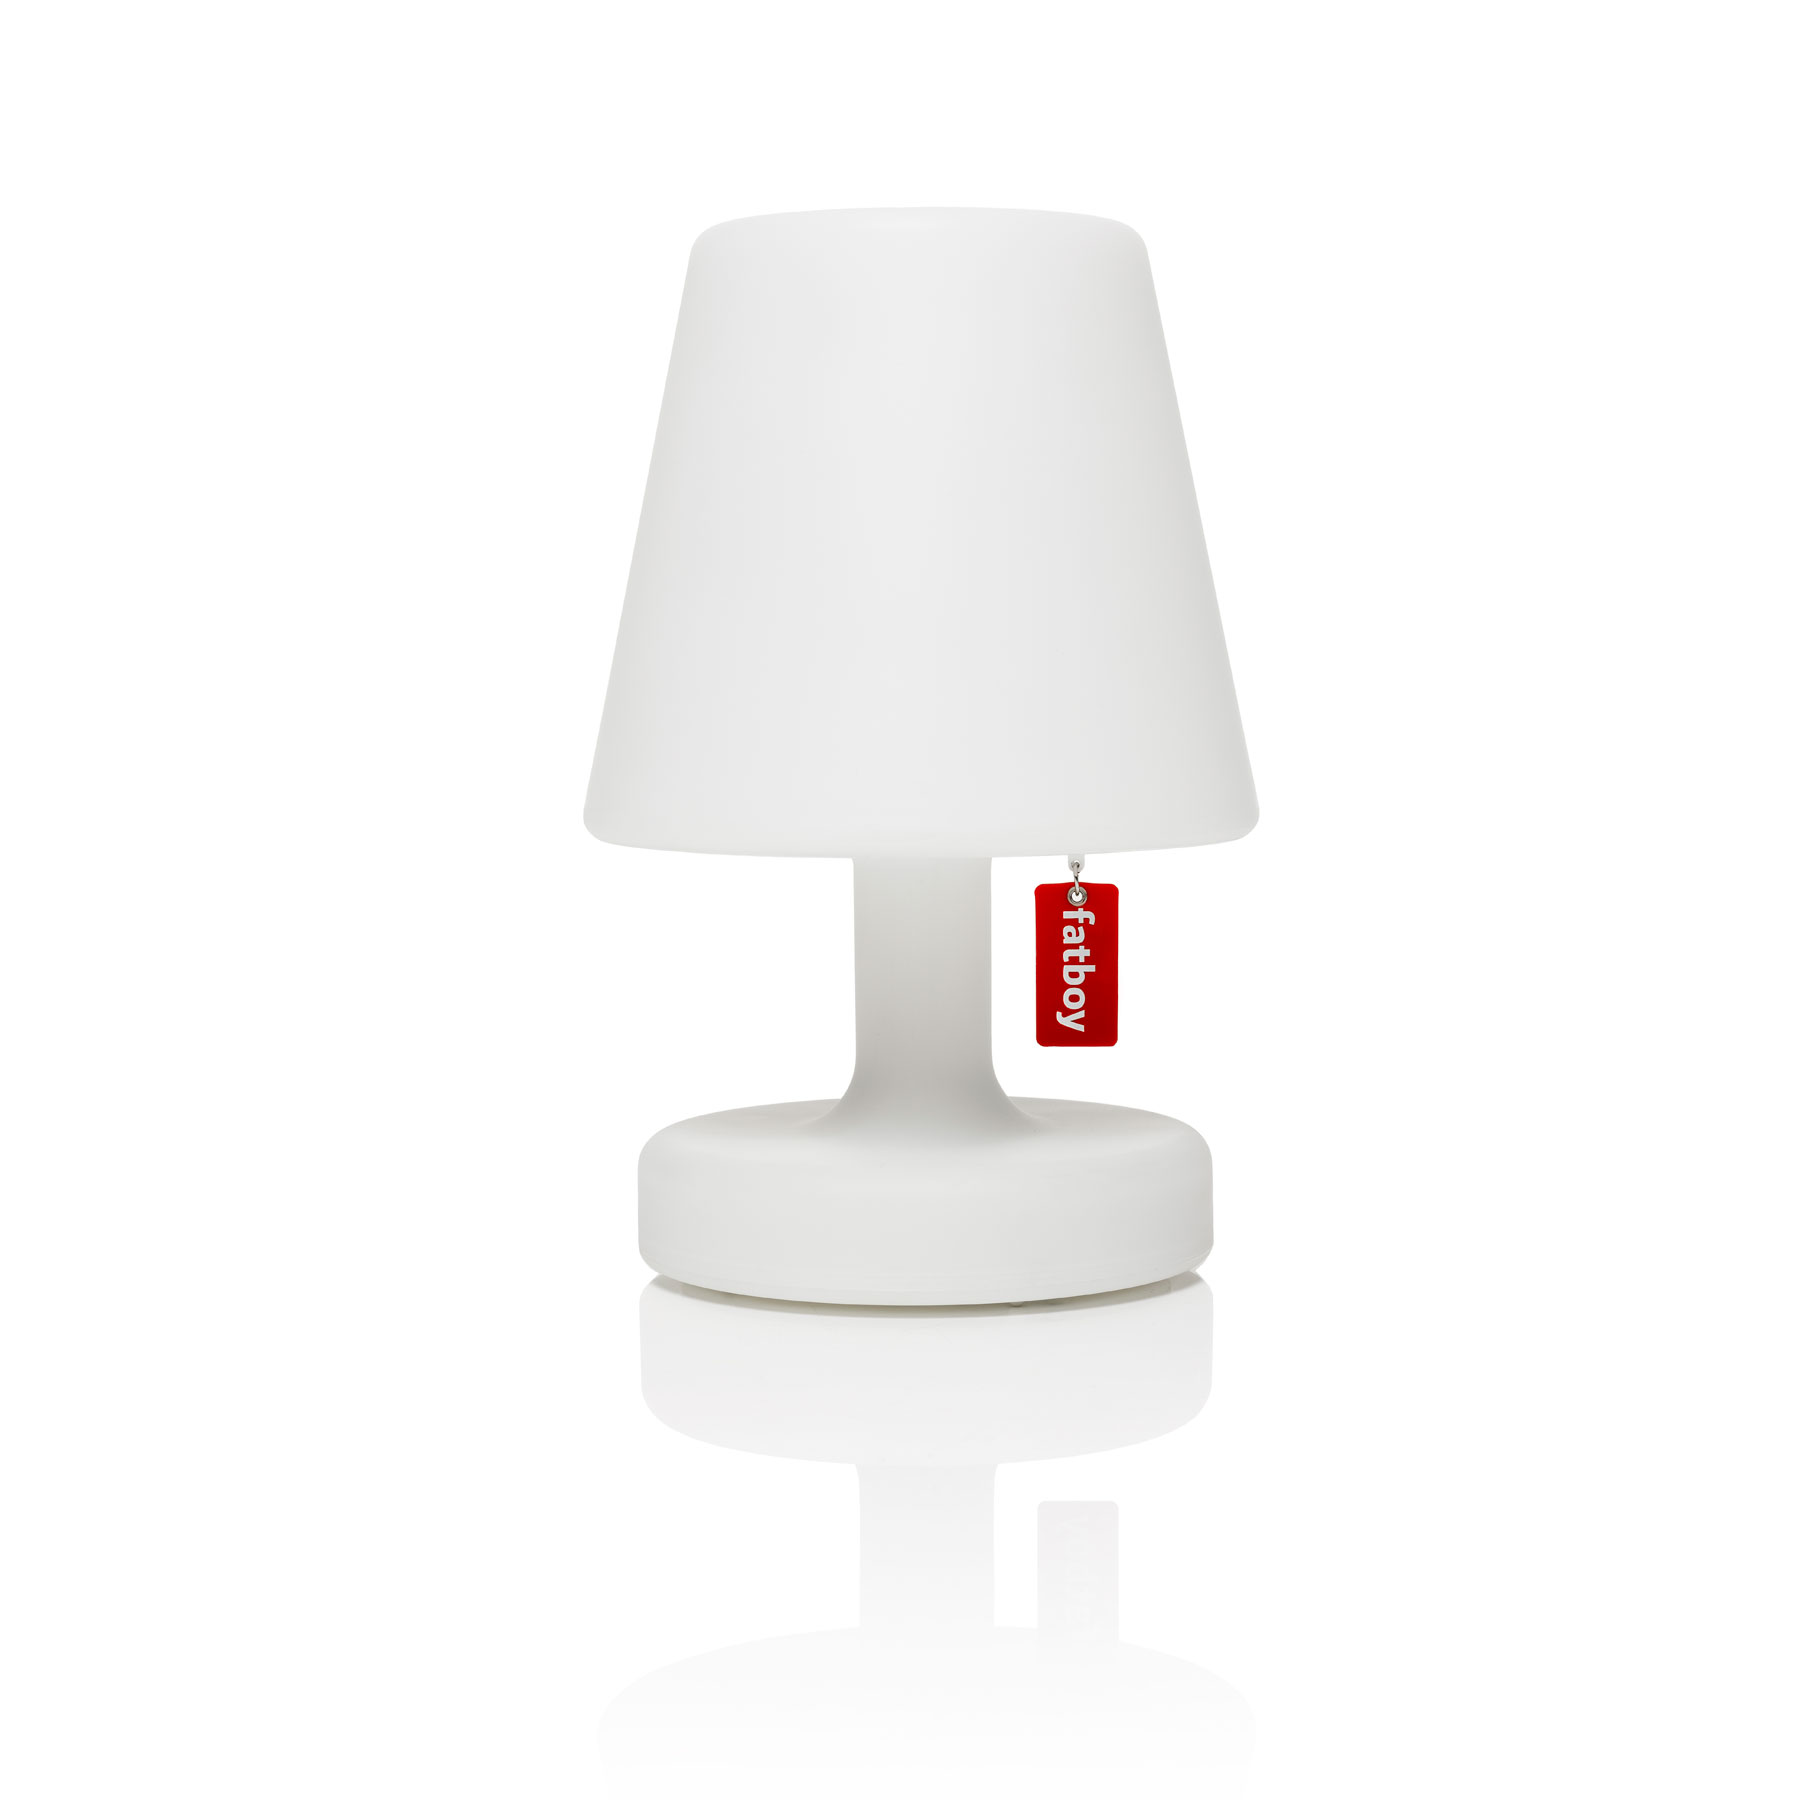 edison the petit cordless led table lamp by fatboy usa etppck wht. Black Bedroom Furniture Sets. Home Design Ideas